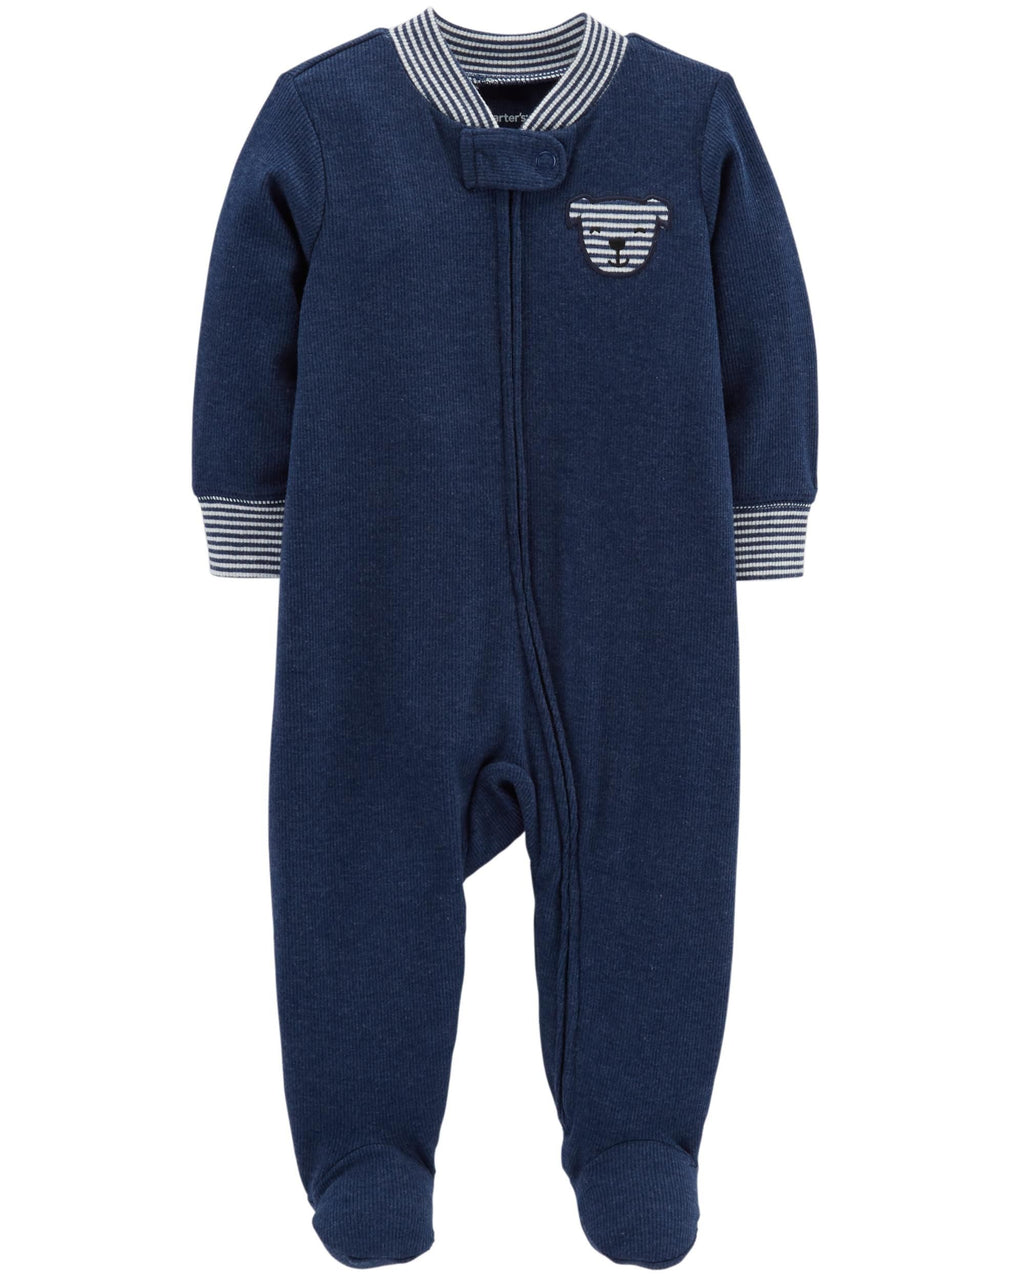 Enterito CARTERS Dog Zip-Up Heathered Cotton Sleep & Play